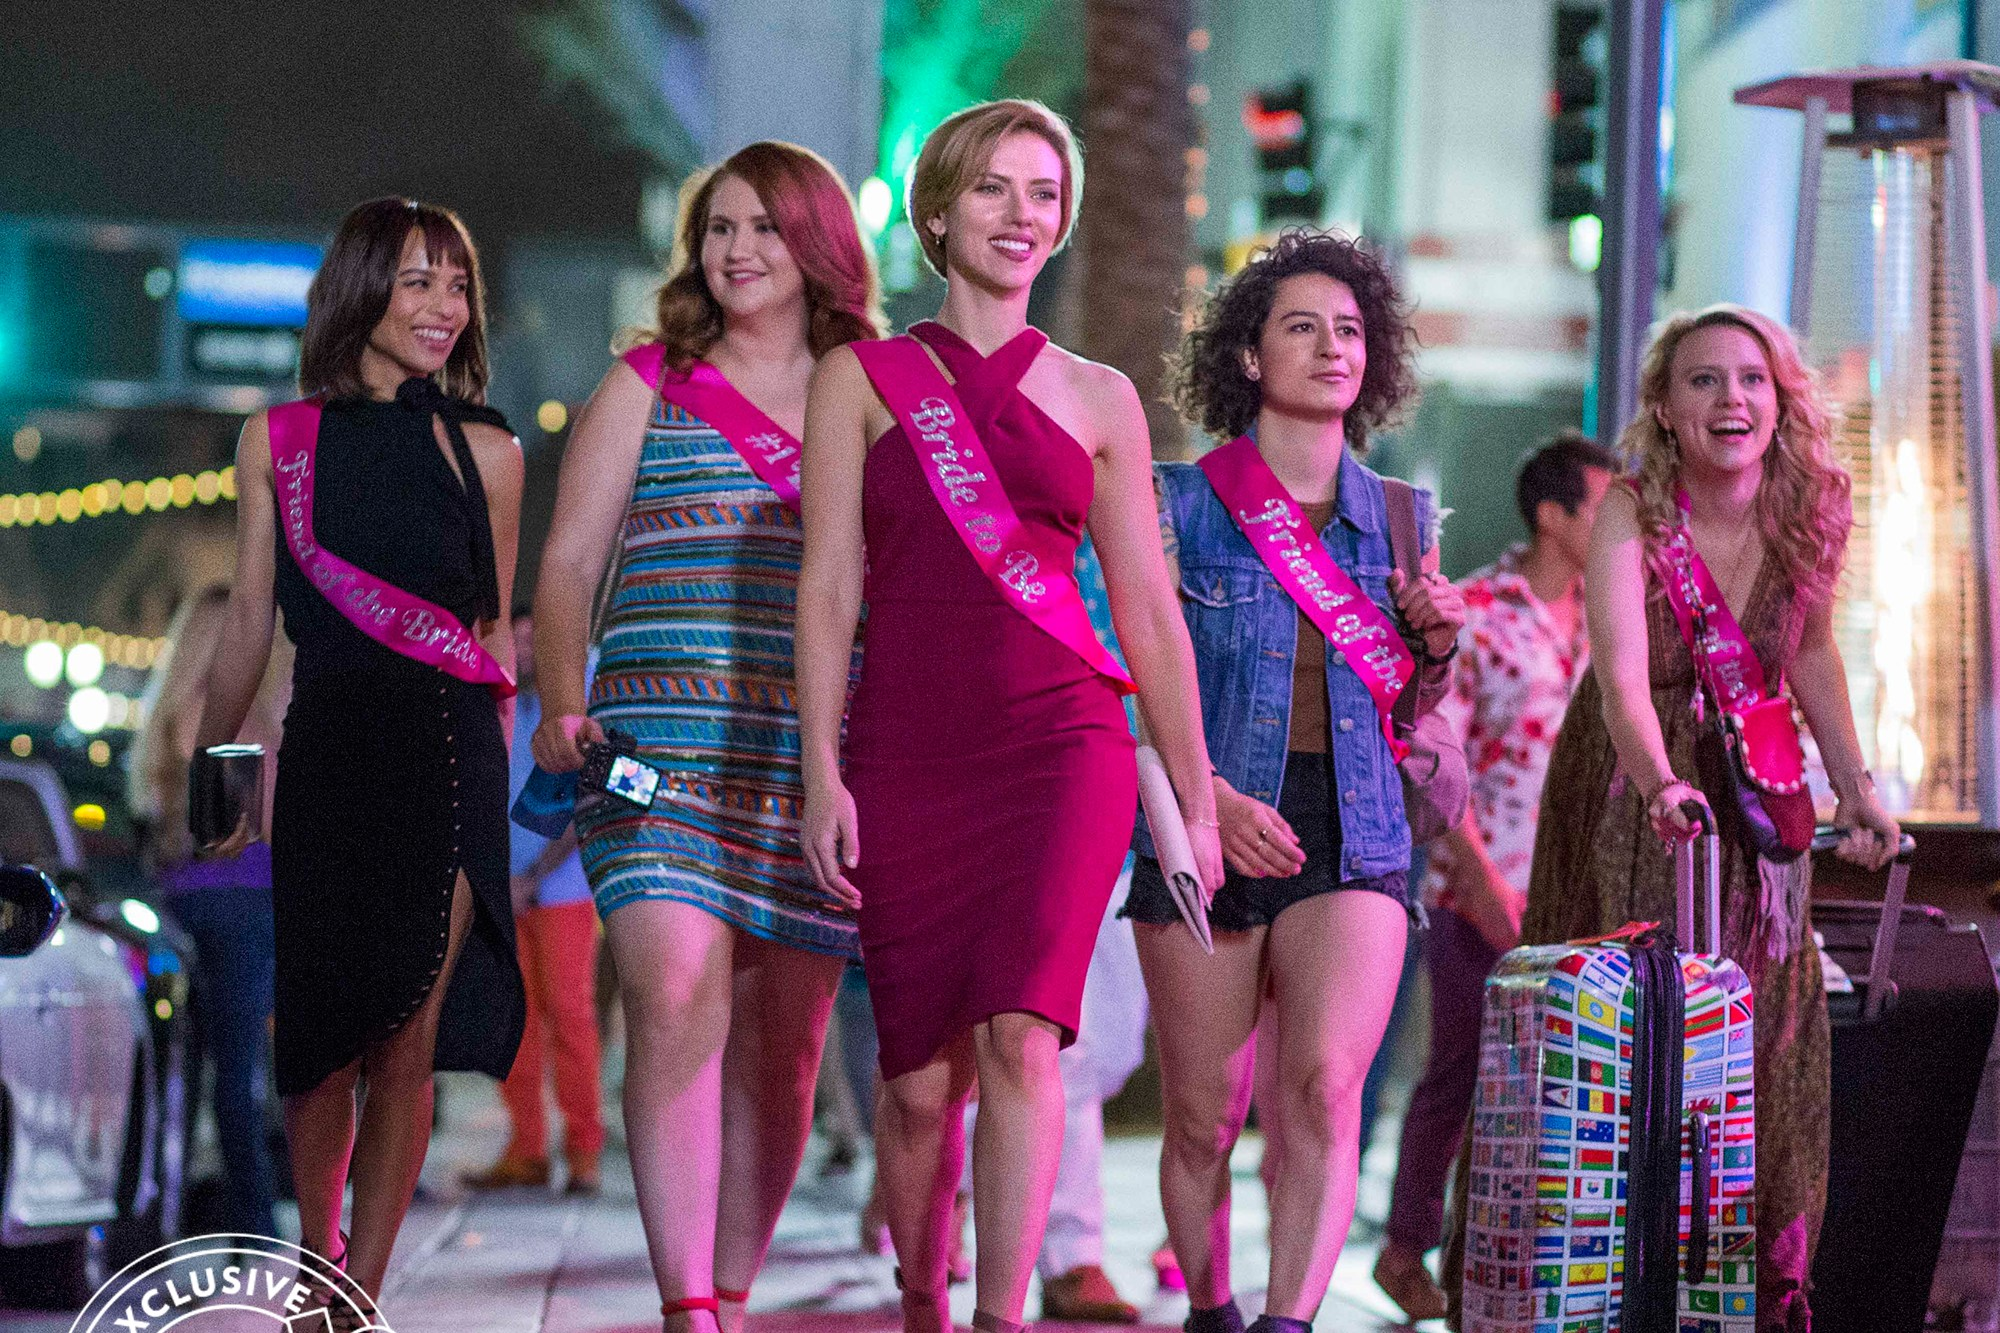 Rough Night review: A dark but funny night out from hell